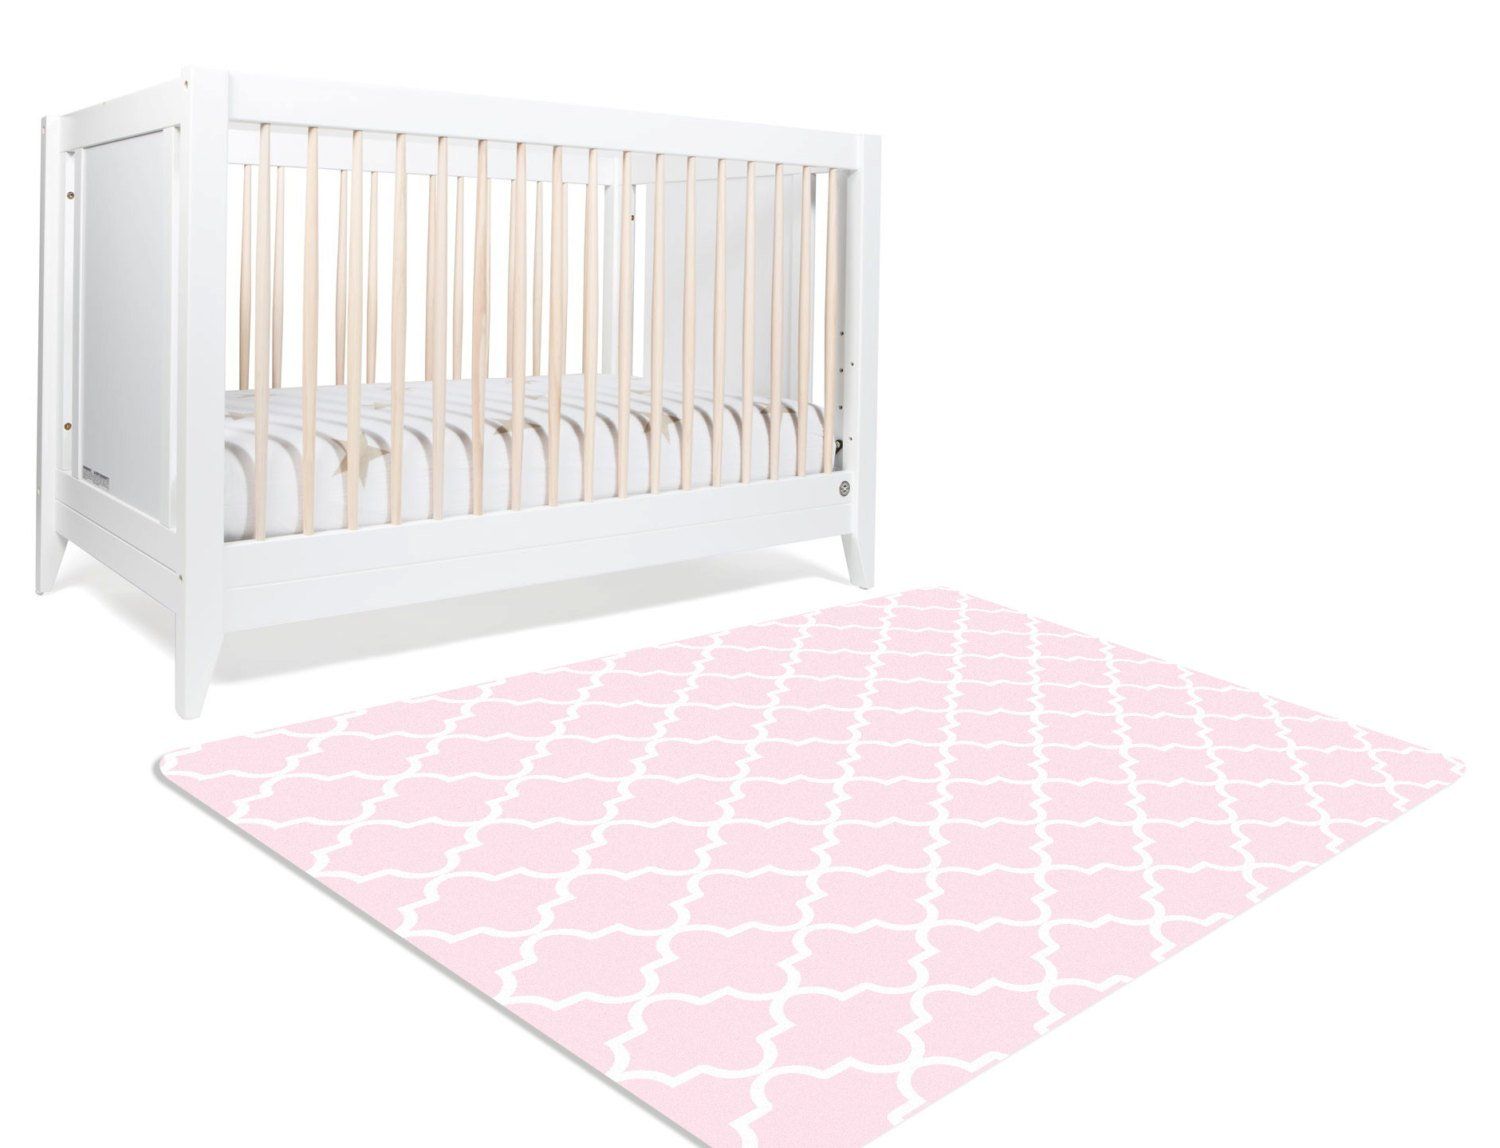 A geometric nursery rug with moroccan trellis design. The white trellis design is on a pink background on the rectangular rug. This nursery rug is perfect for your daughter's princess themed nursery.